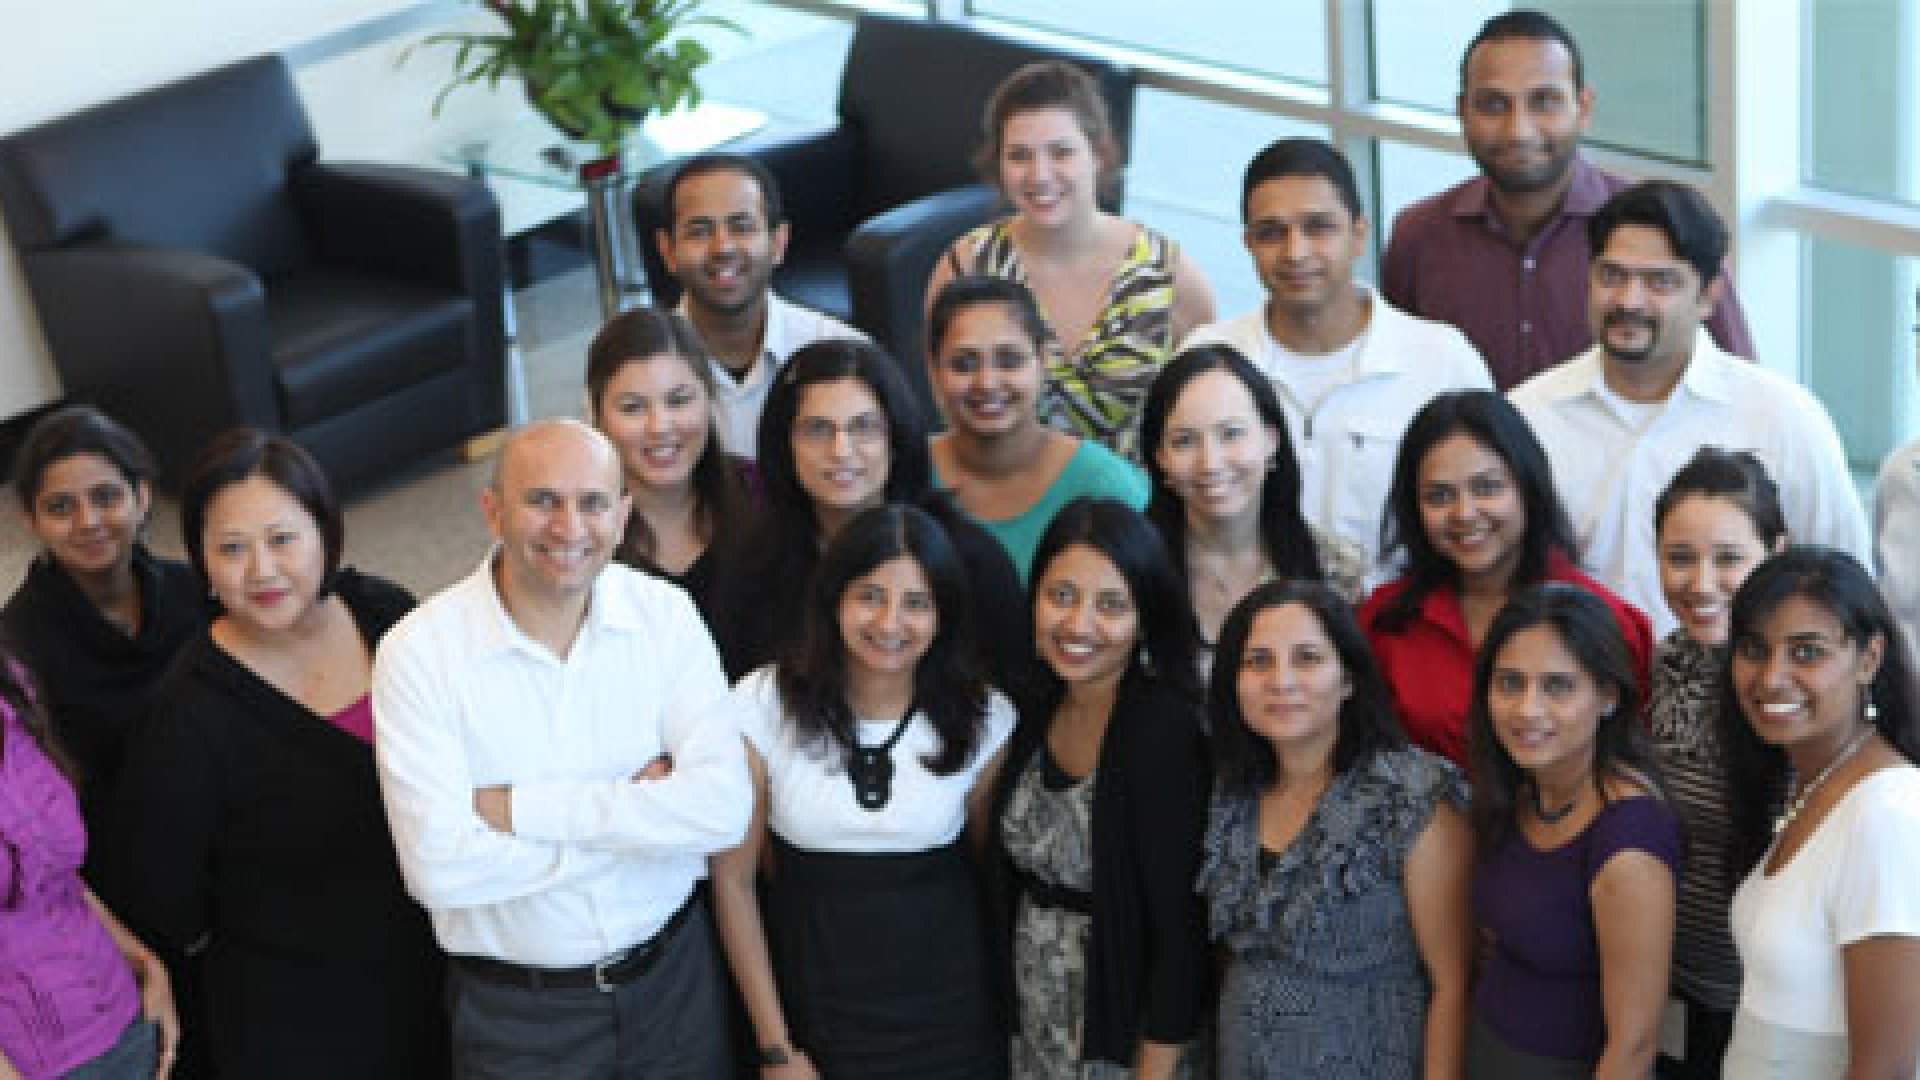 Akraya's employees gather together in its Sunnvyvale, Calif. offices.